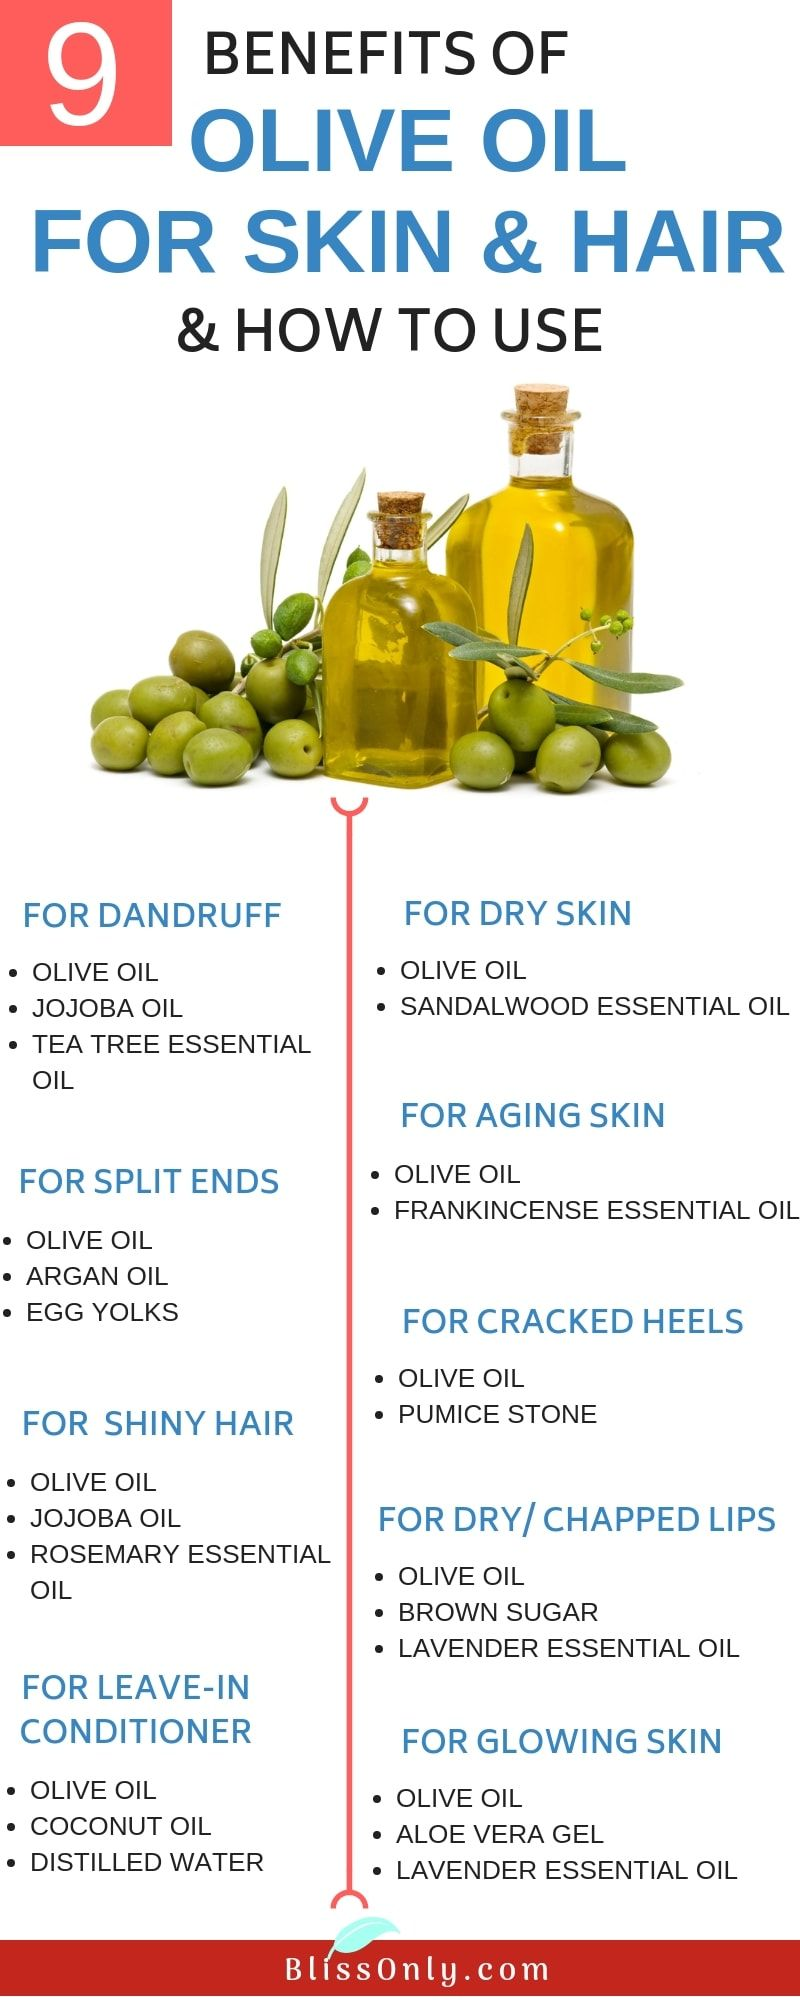 10 benefits of olive oil for skin and hair and how to use